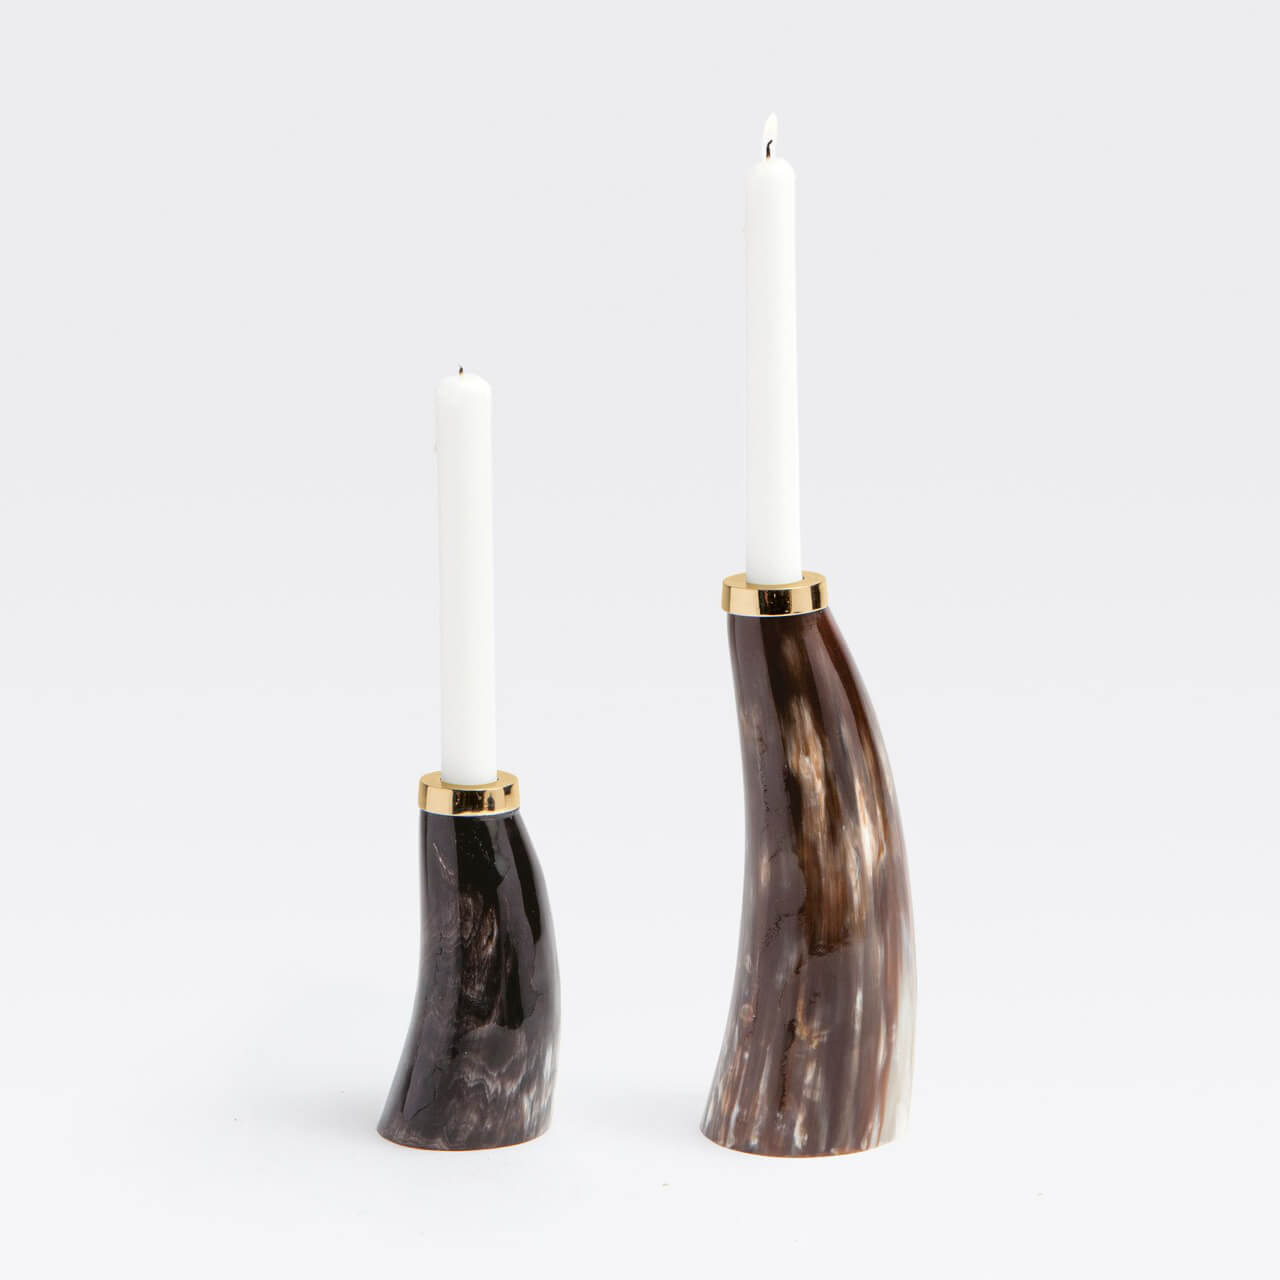 Brian Horn Candle Holders, Set/2